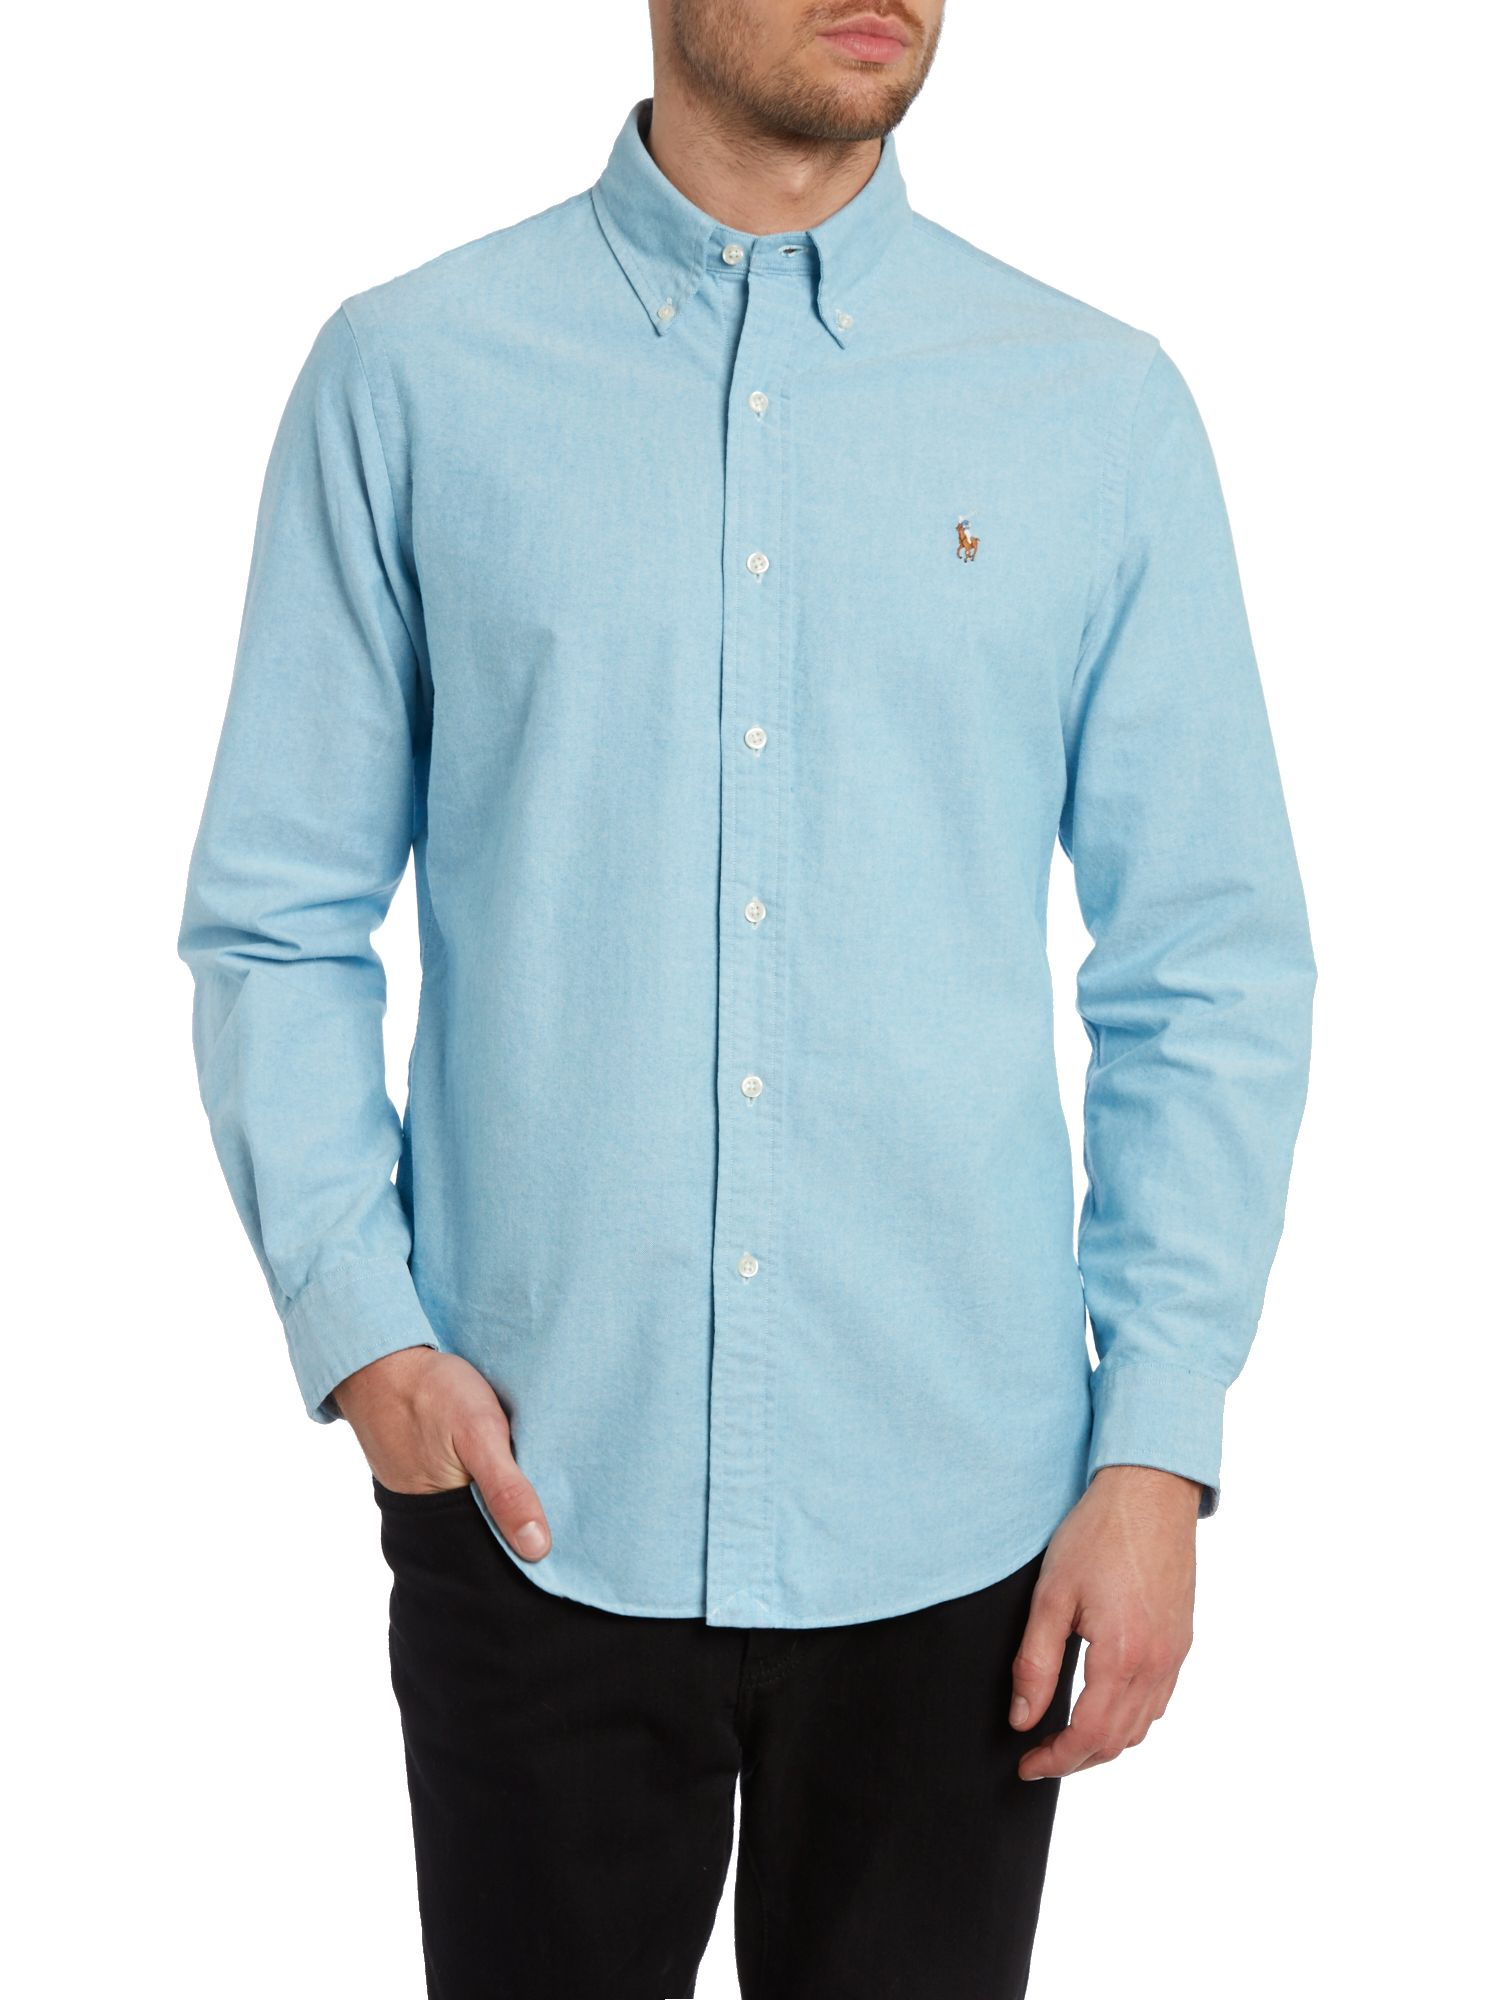 Long sleeve custom fit oxford shirt